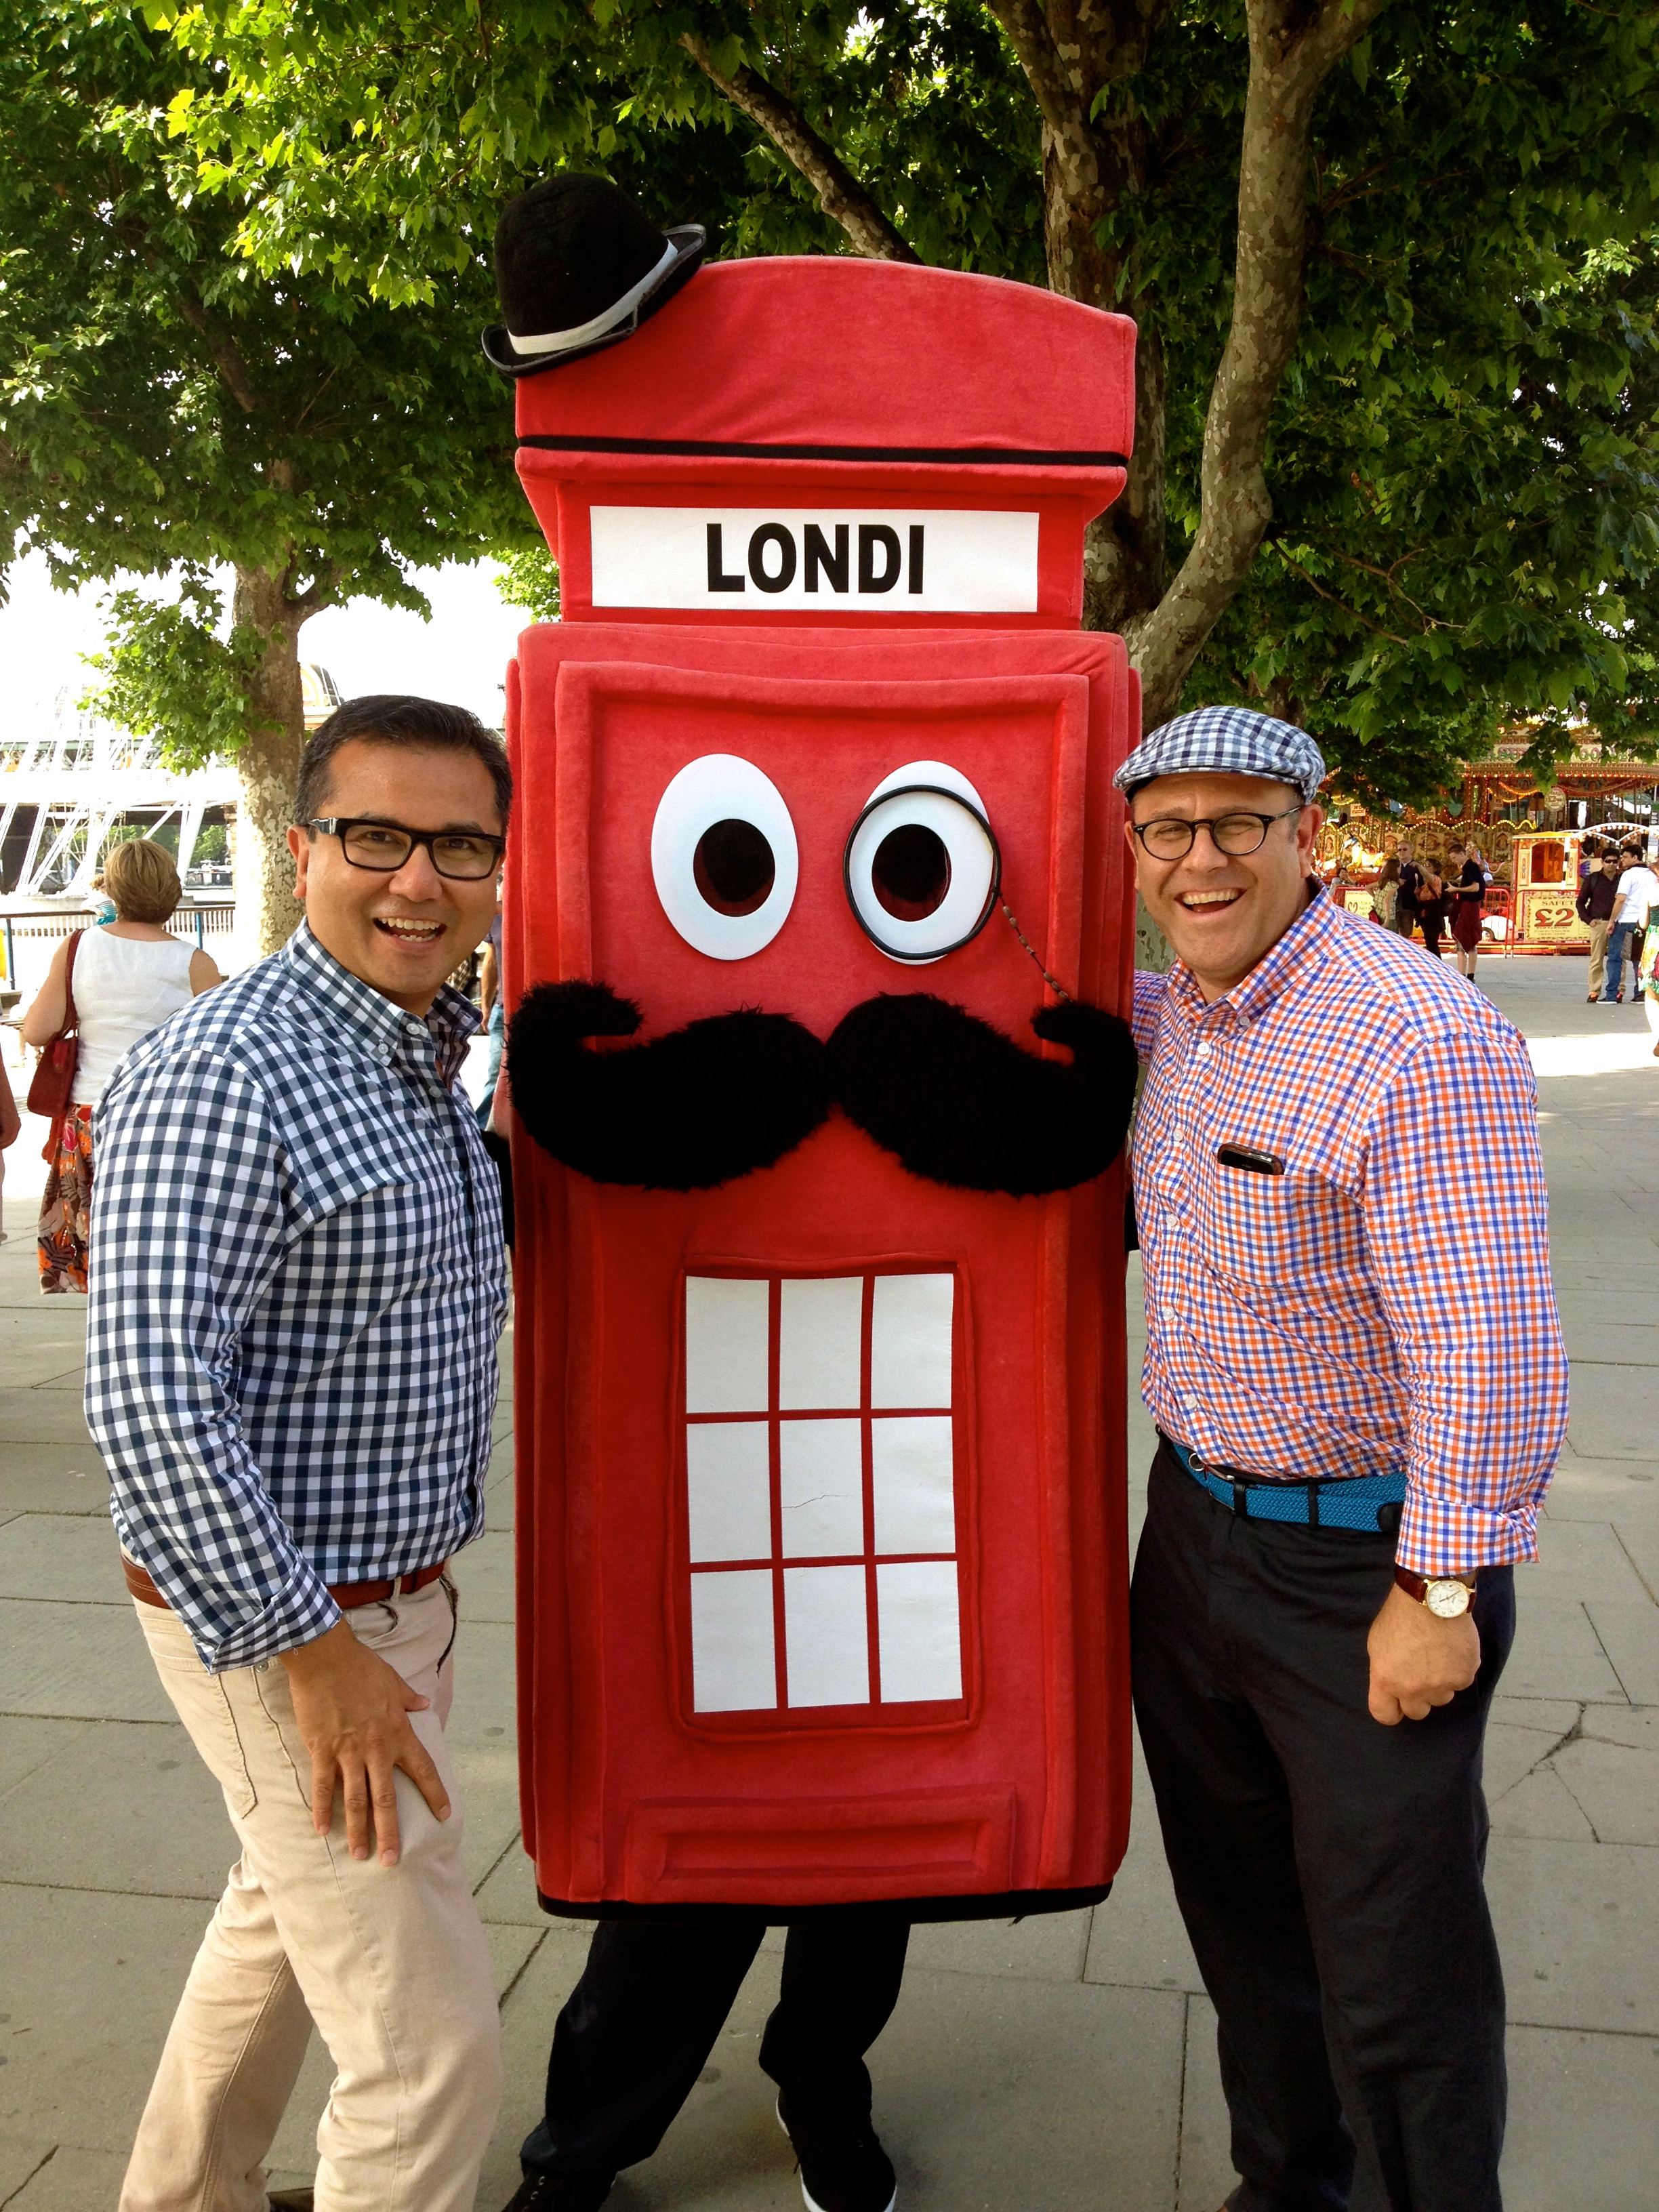 Posing with Londi Character on Thames South Bank Centre London